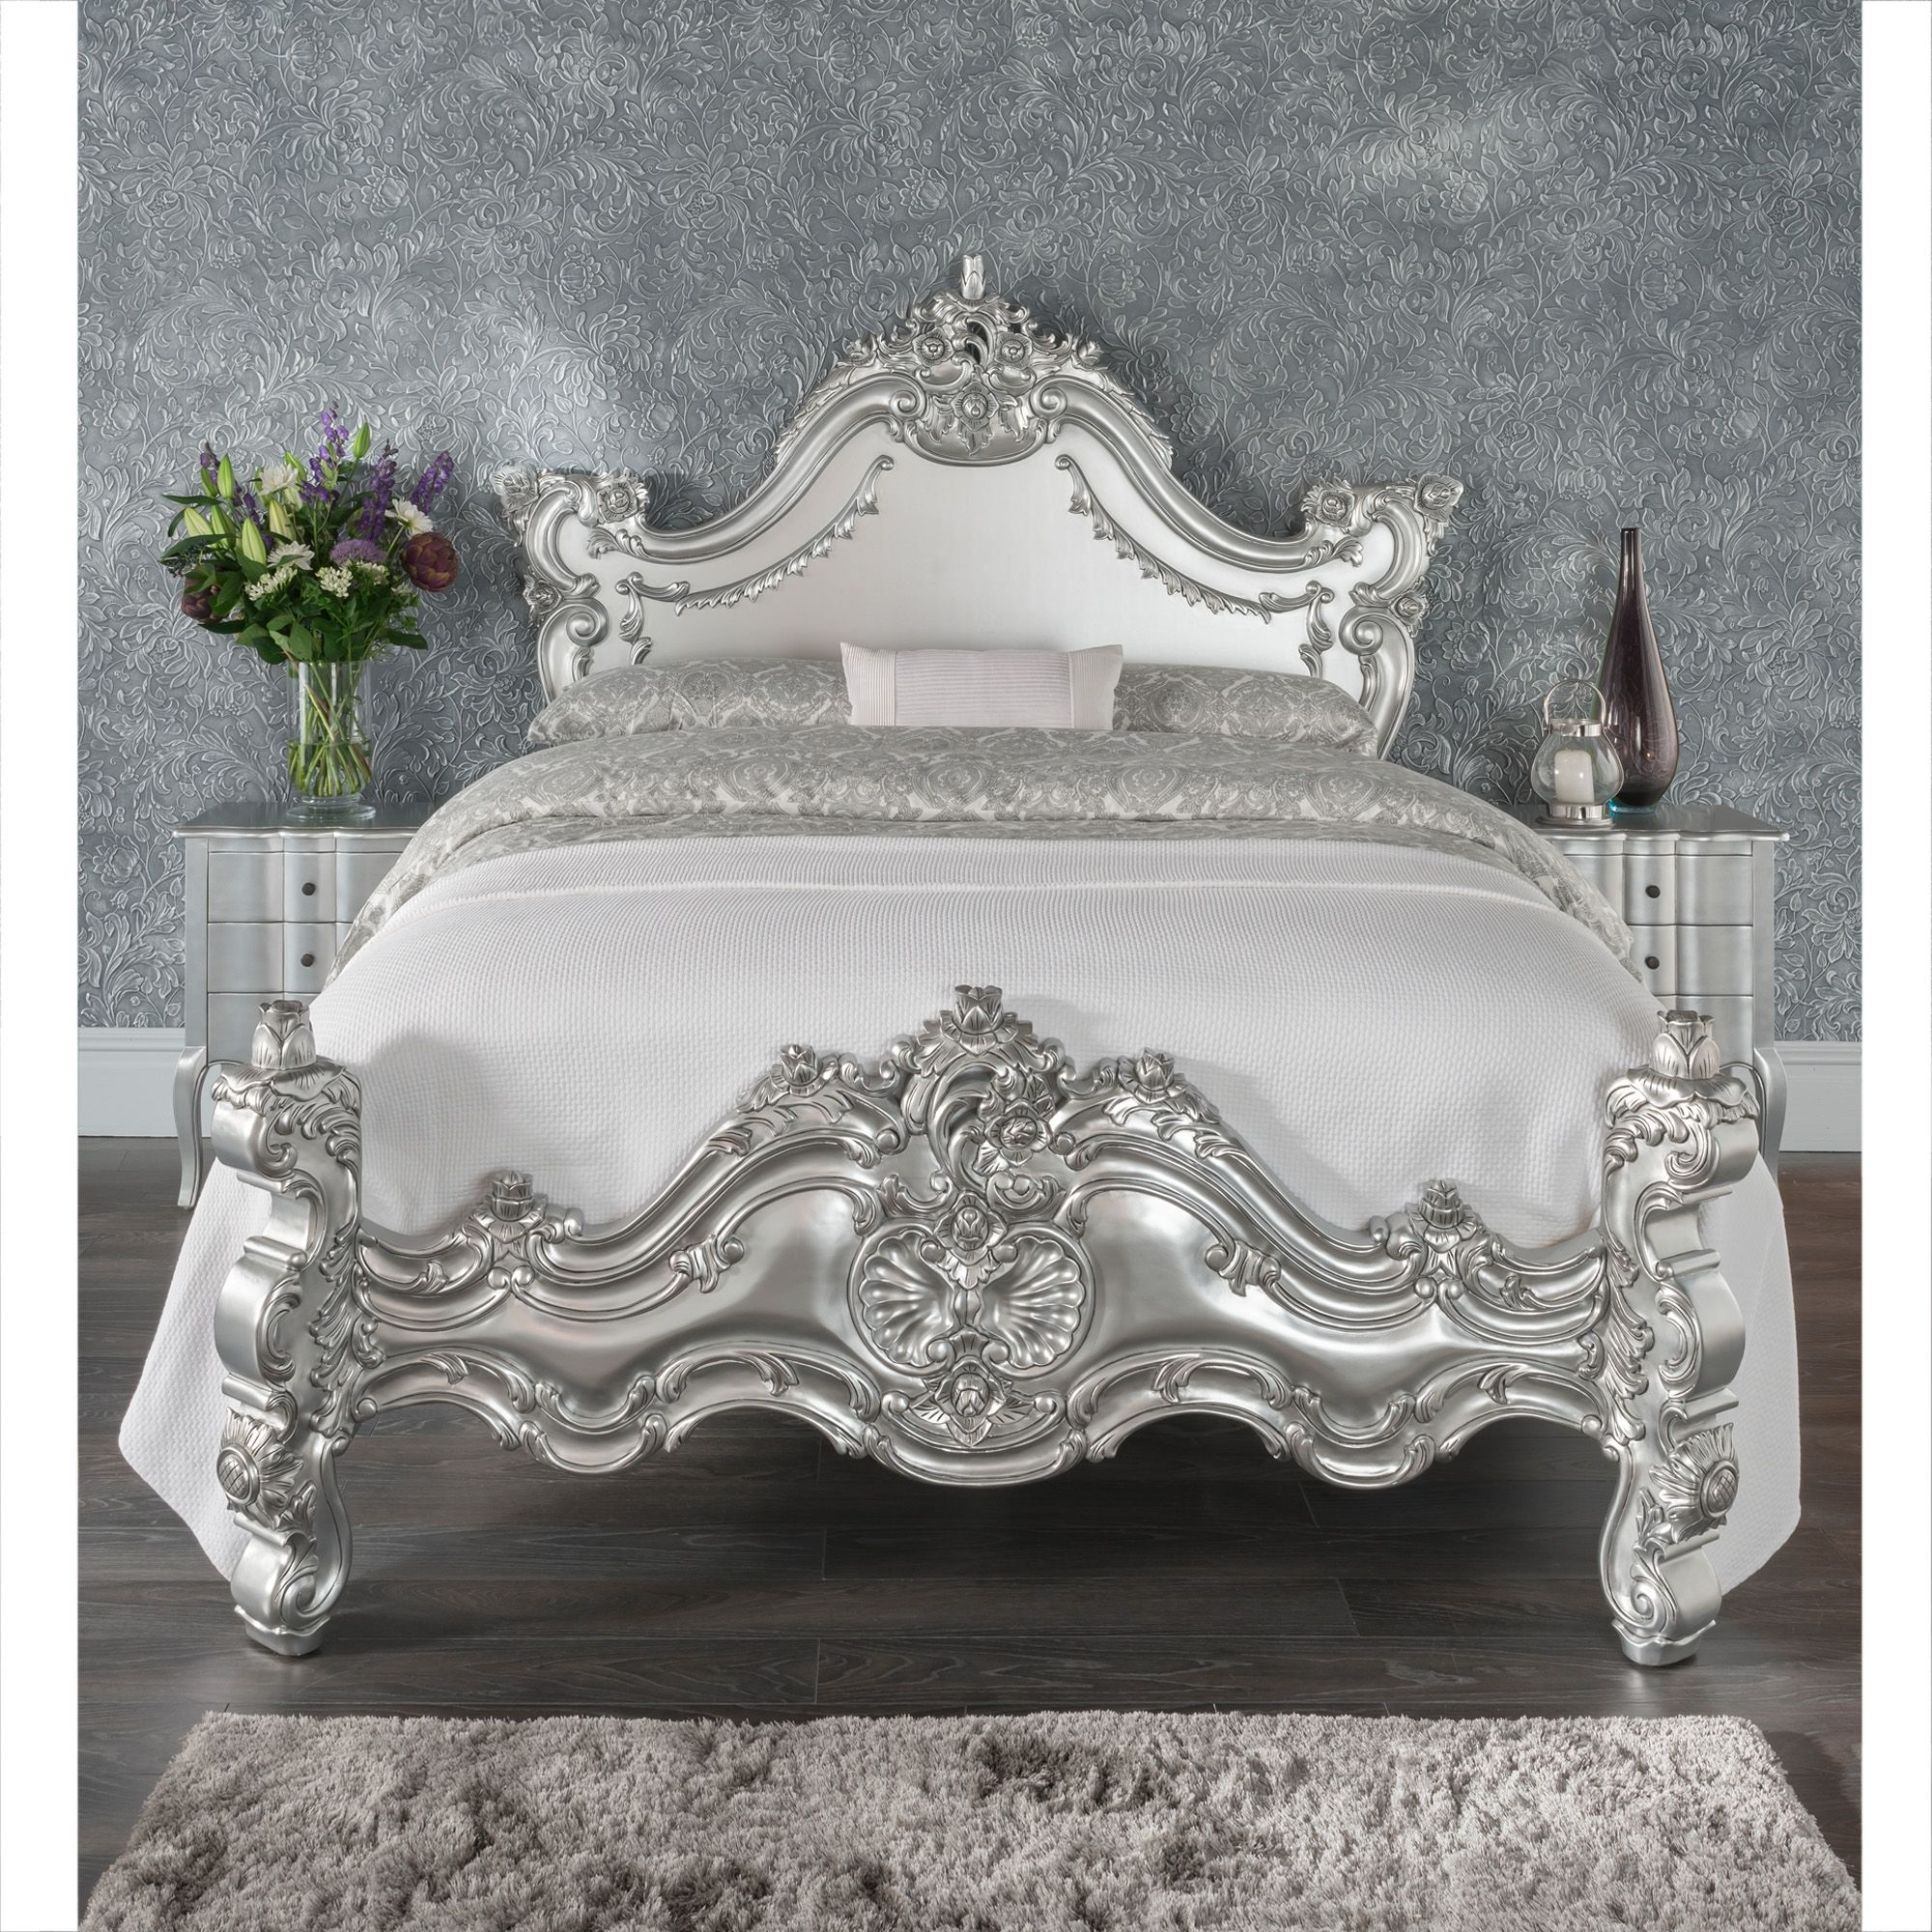 bedroom ideas shabby decorate how a chic bedrooms g to